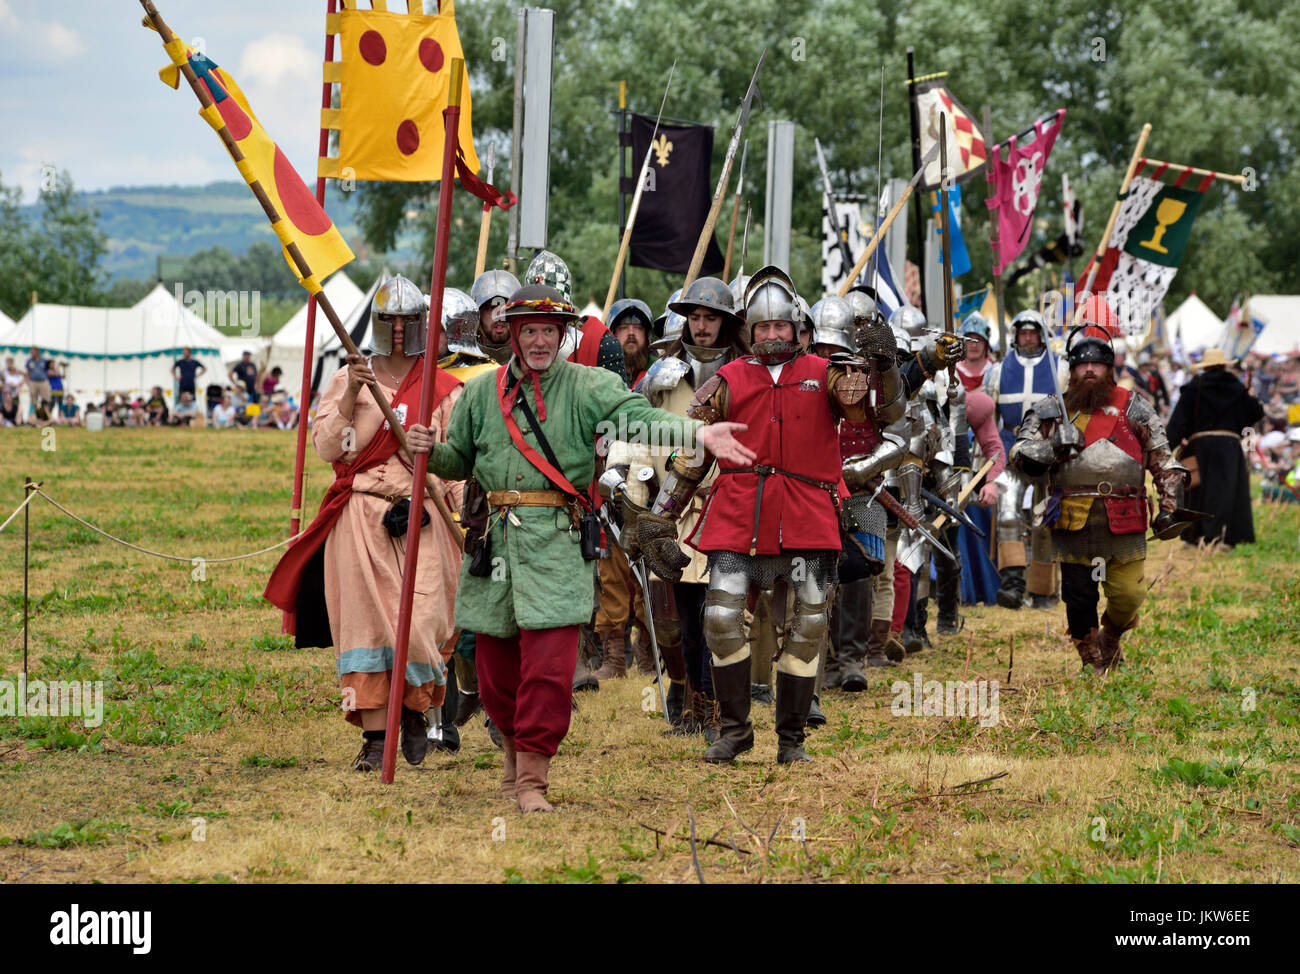 Re-enactor knights in armour marching, Tewkesbury Medieval Festival, 2017 - Stock Image